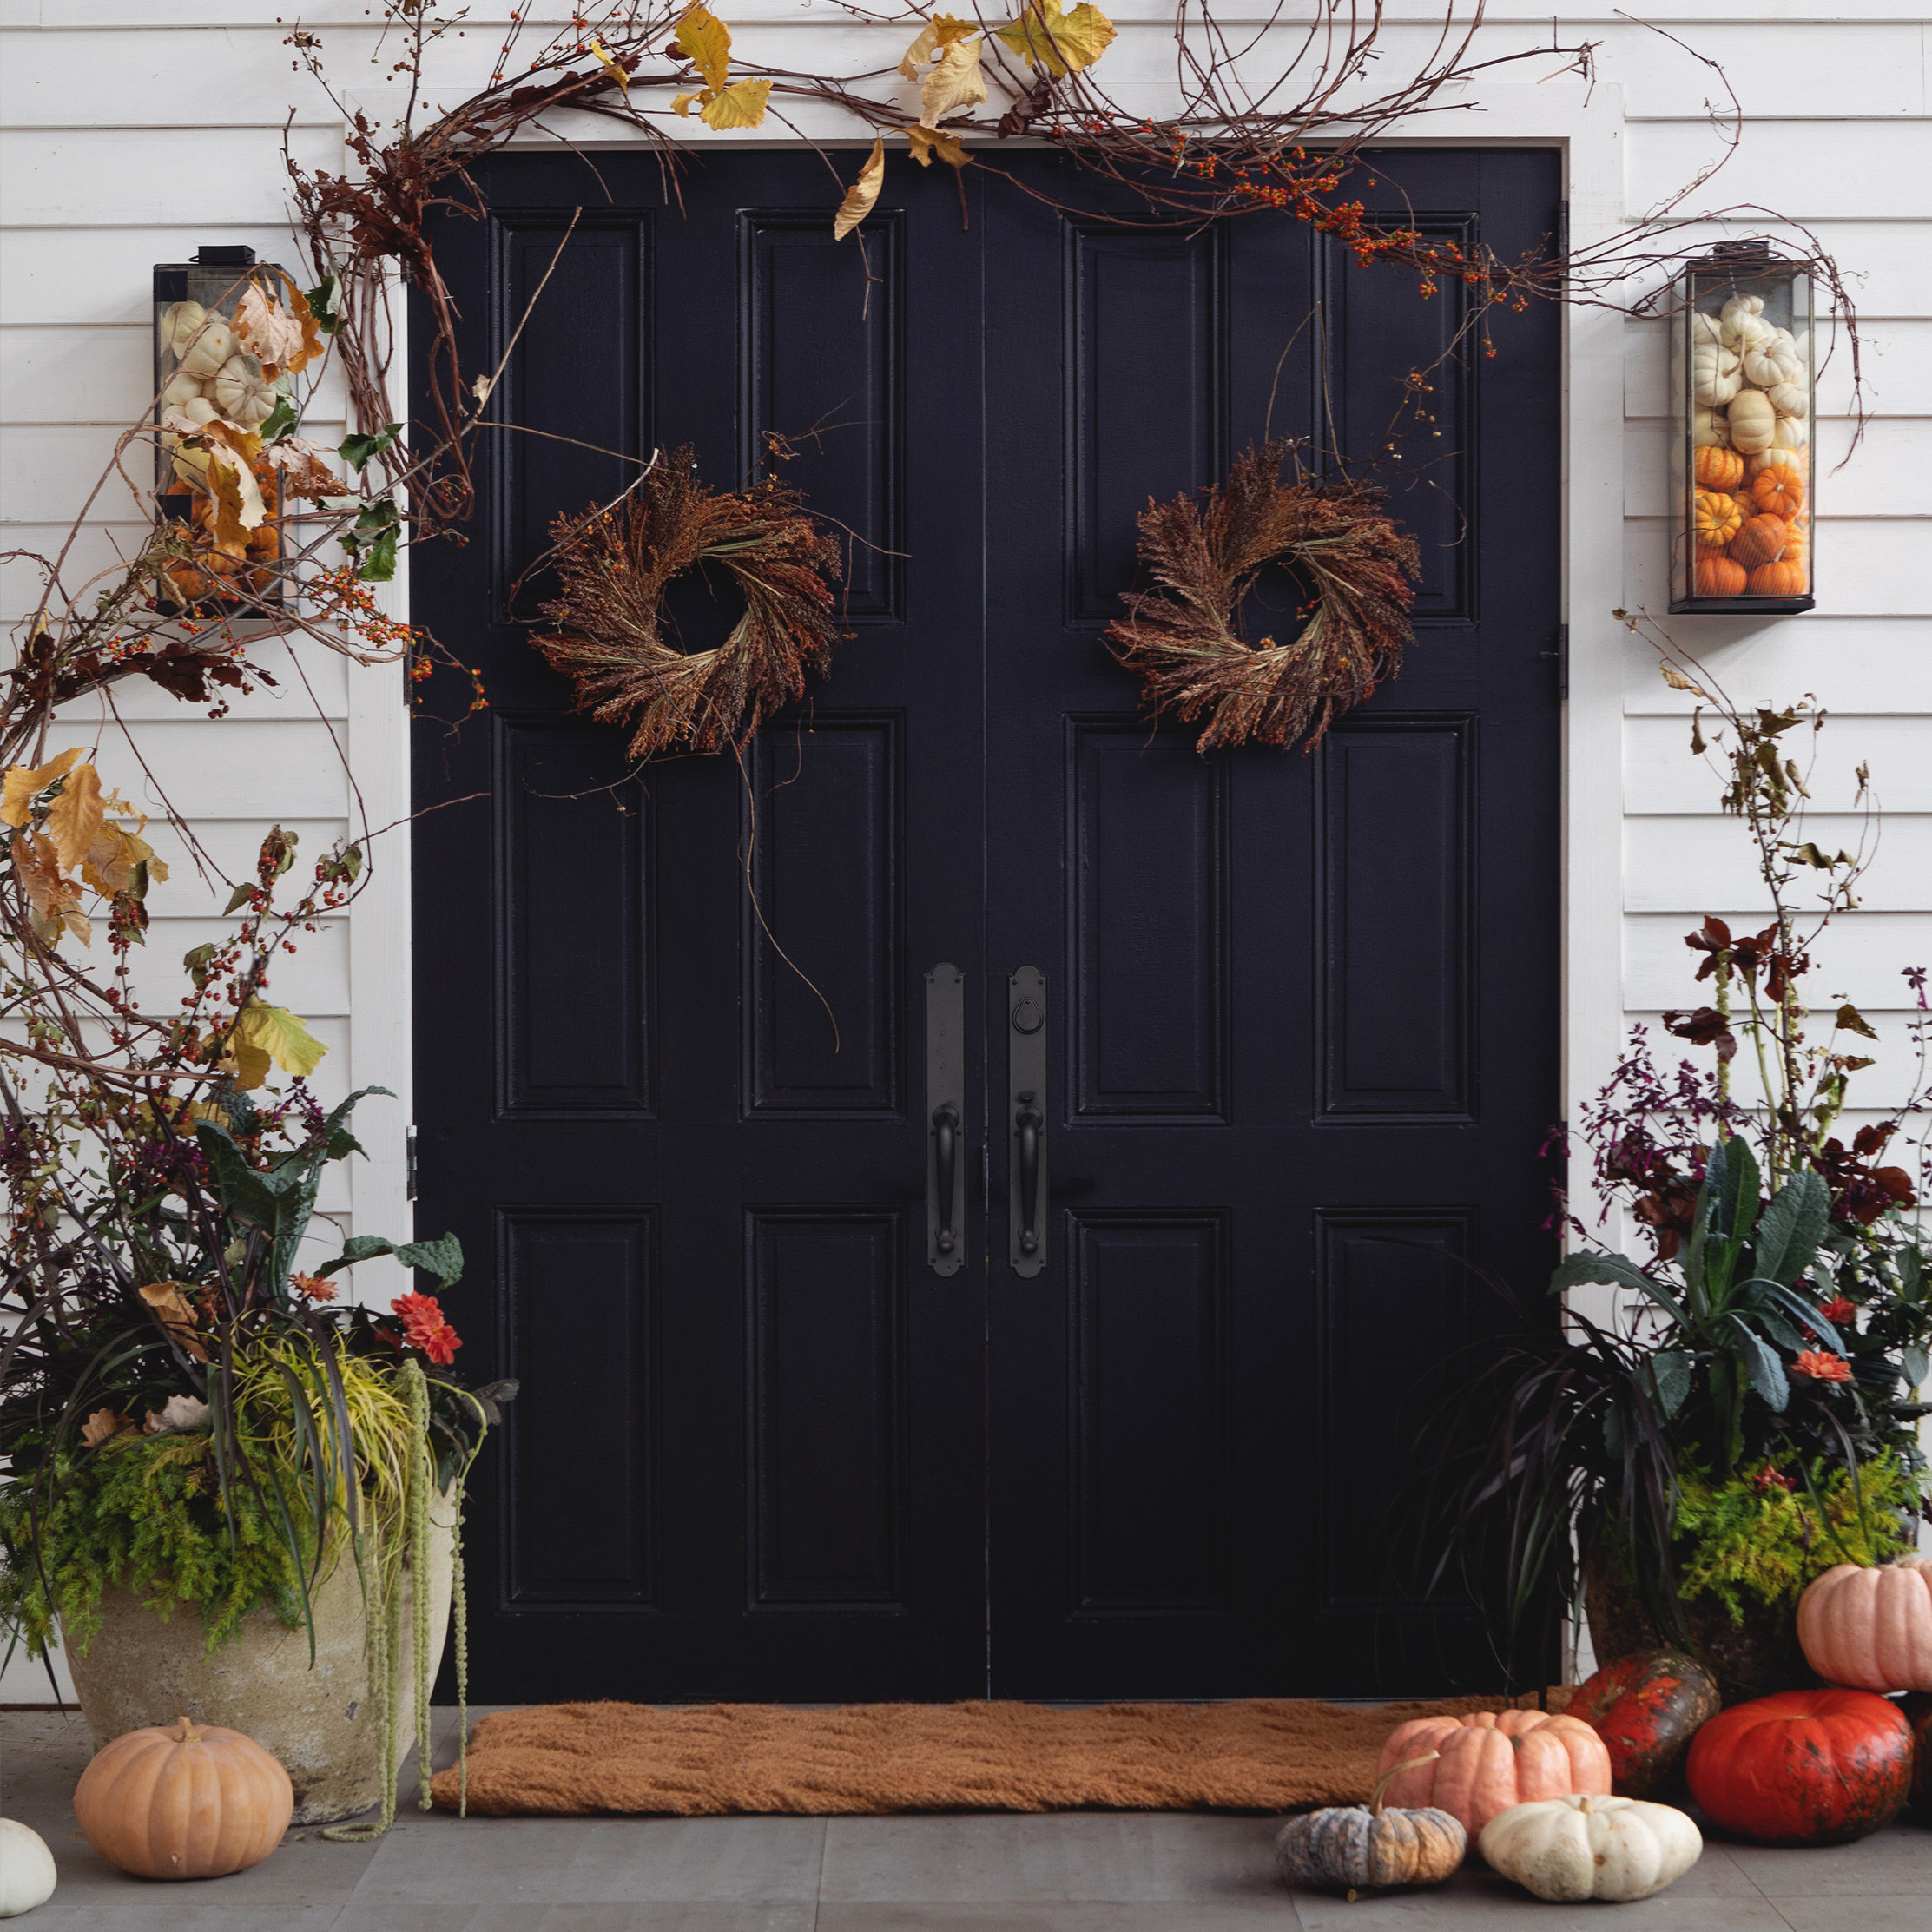 The Terrain Halloween Doorstep with our Creative Stylist